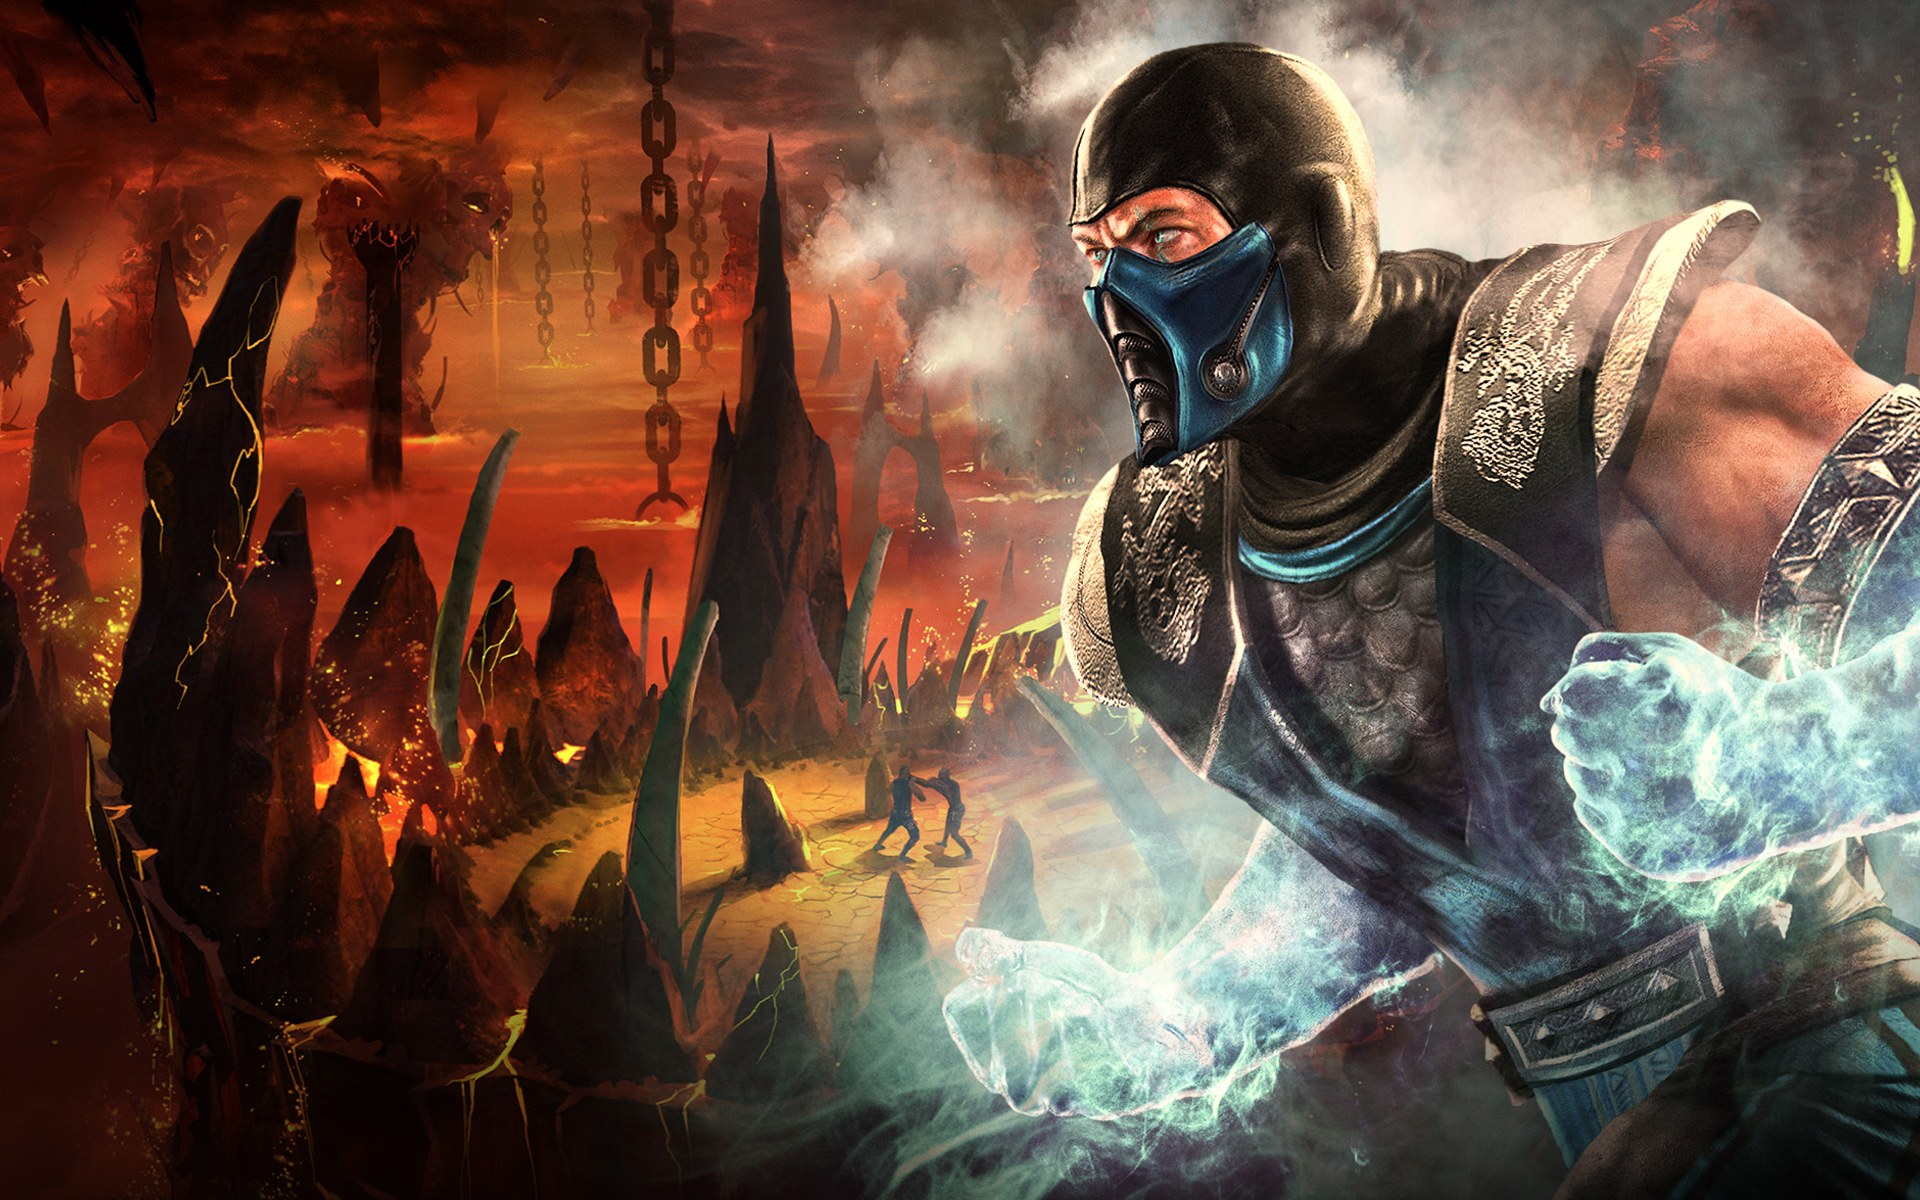 Mortal Kombat Wallpapers Free